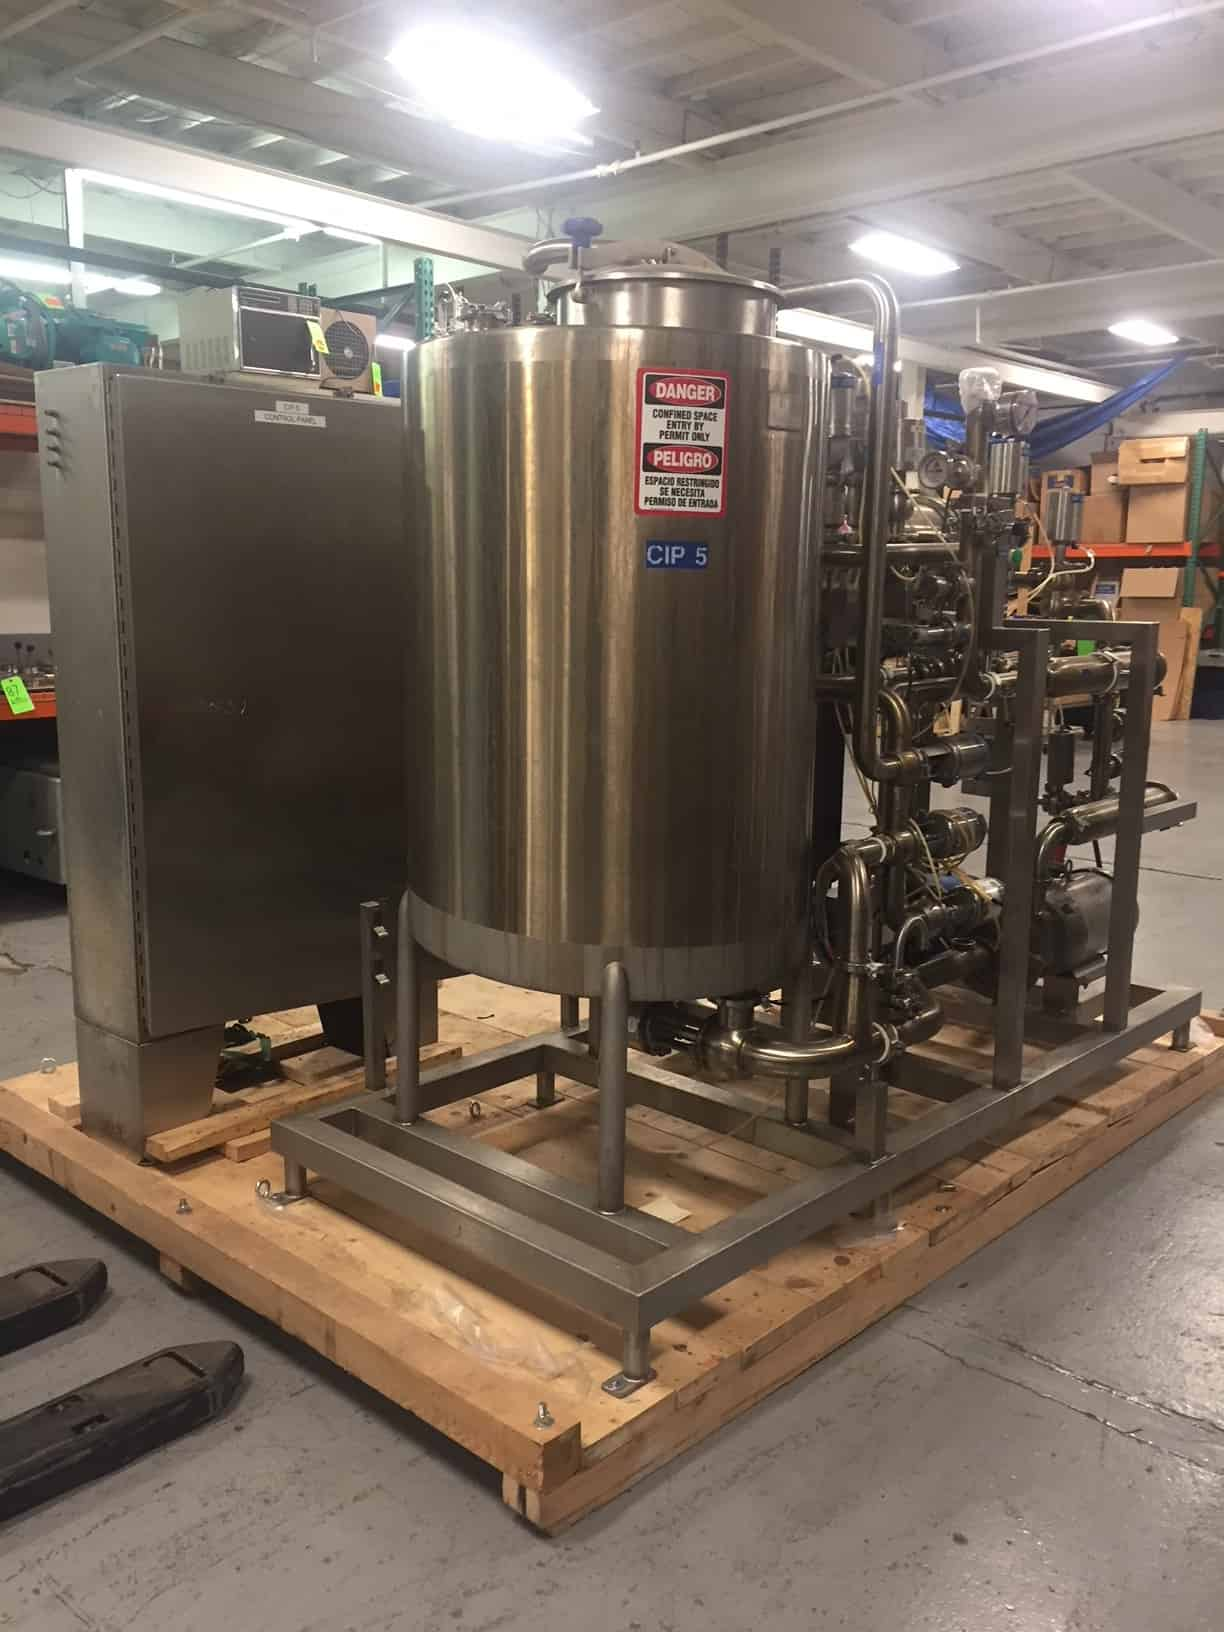 "Sani-Matic Skid Mounted S/S CIP System, Job #40737, Item # 01-200661, with 200 Gal. S/S Tank, 2011 Enerquip S/S Shell & Tube Heat Exchanger BN 10486, SN 12784, MAWP 150 psig @ 375 degree F, Fristam 10 hp S/S Centrifugal Pump, Endross Hauser 2"" Flow Meter with Read-Out, Inline Filter, Gea, WCB & Sudmo Air Valves, Check Valves, Temp Sensors, Gauges, S/S Enclosure with Allen Bradley Flex IO Controls, Foxboro Conductivity Meter, Solenoids & Breakers Mounted in S/S Enclosure, (CIP Dim. 9 ft L x 4 ft W x 85"" H), Skid Dim. 10 ft L x 90"" W x 90"" H)"